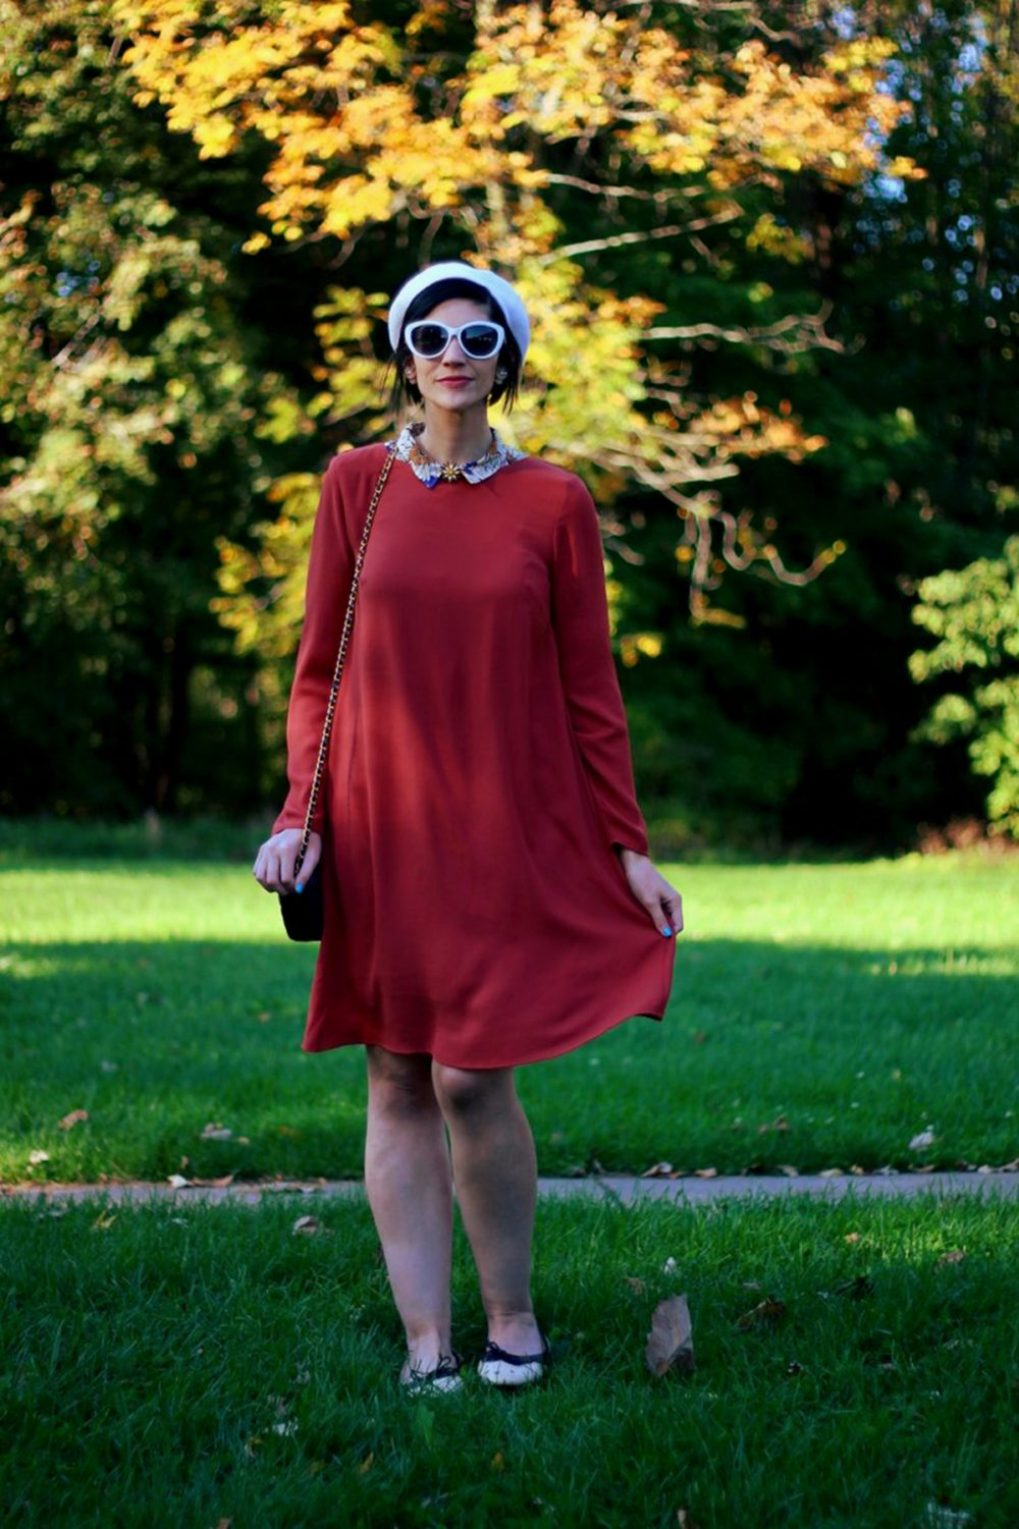 Outfit: Orange retro style dress, flower collar, jewel flower brooch, cream colored beret, navy purse, brown flats